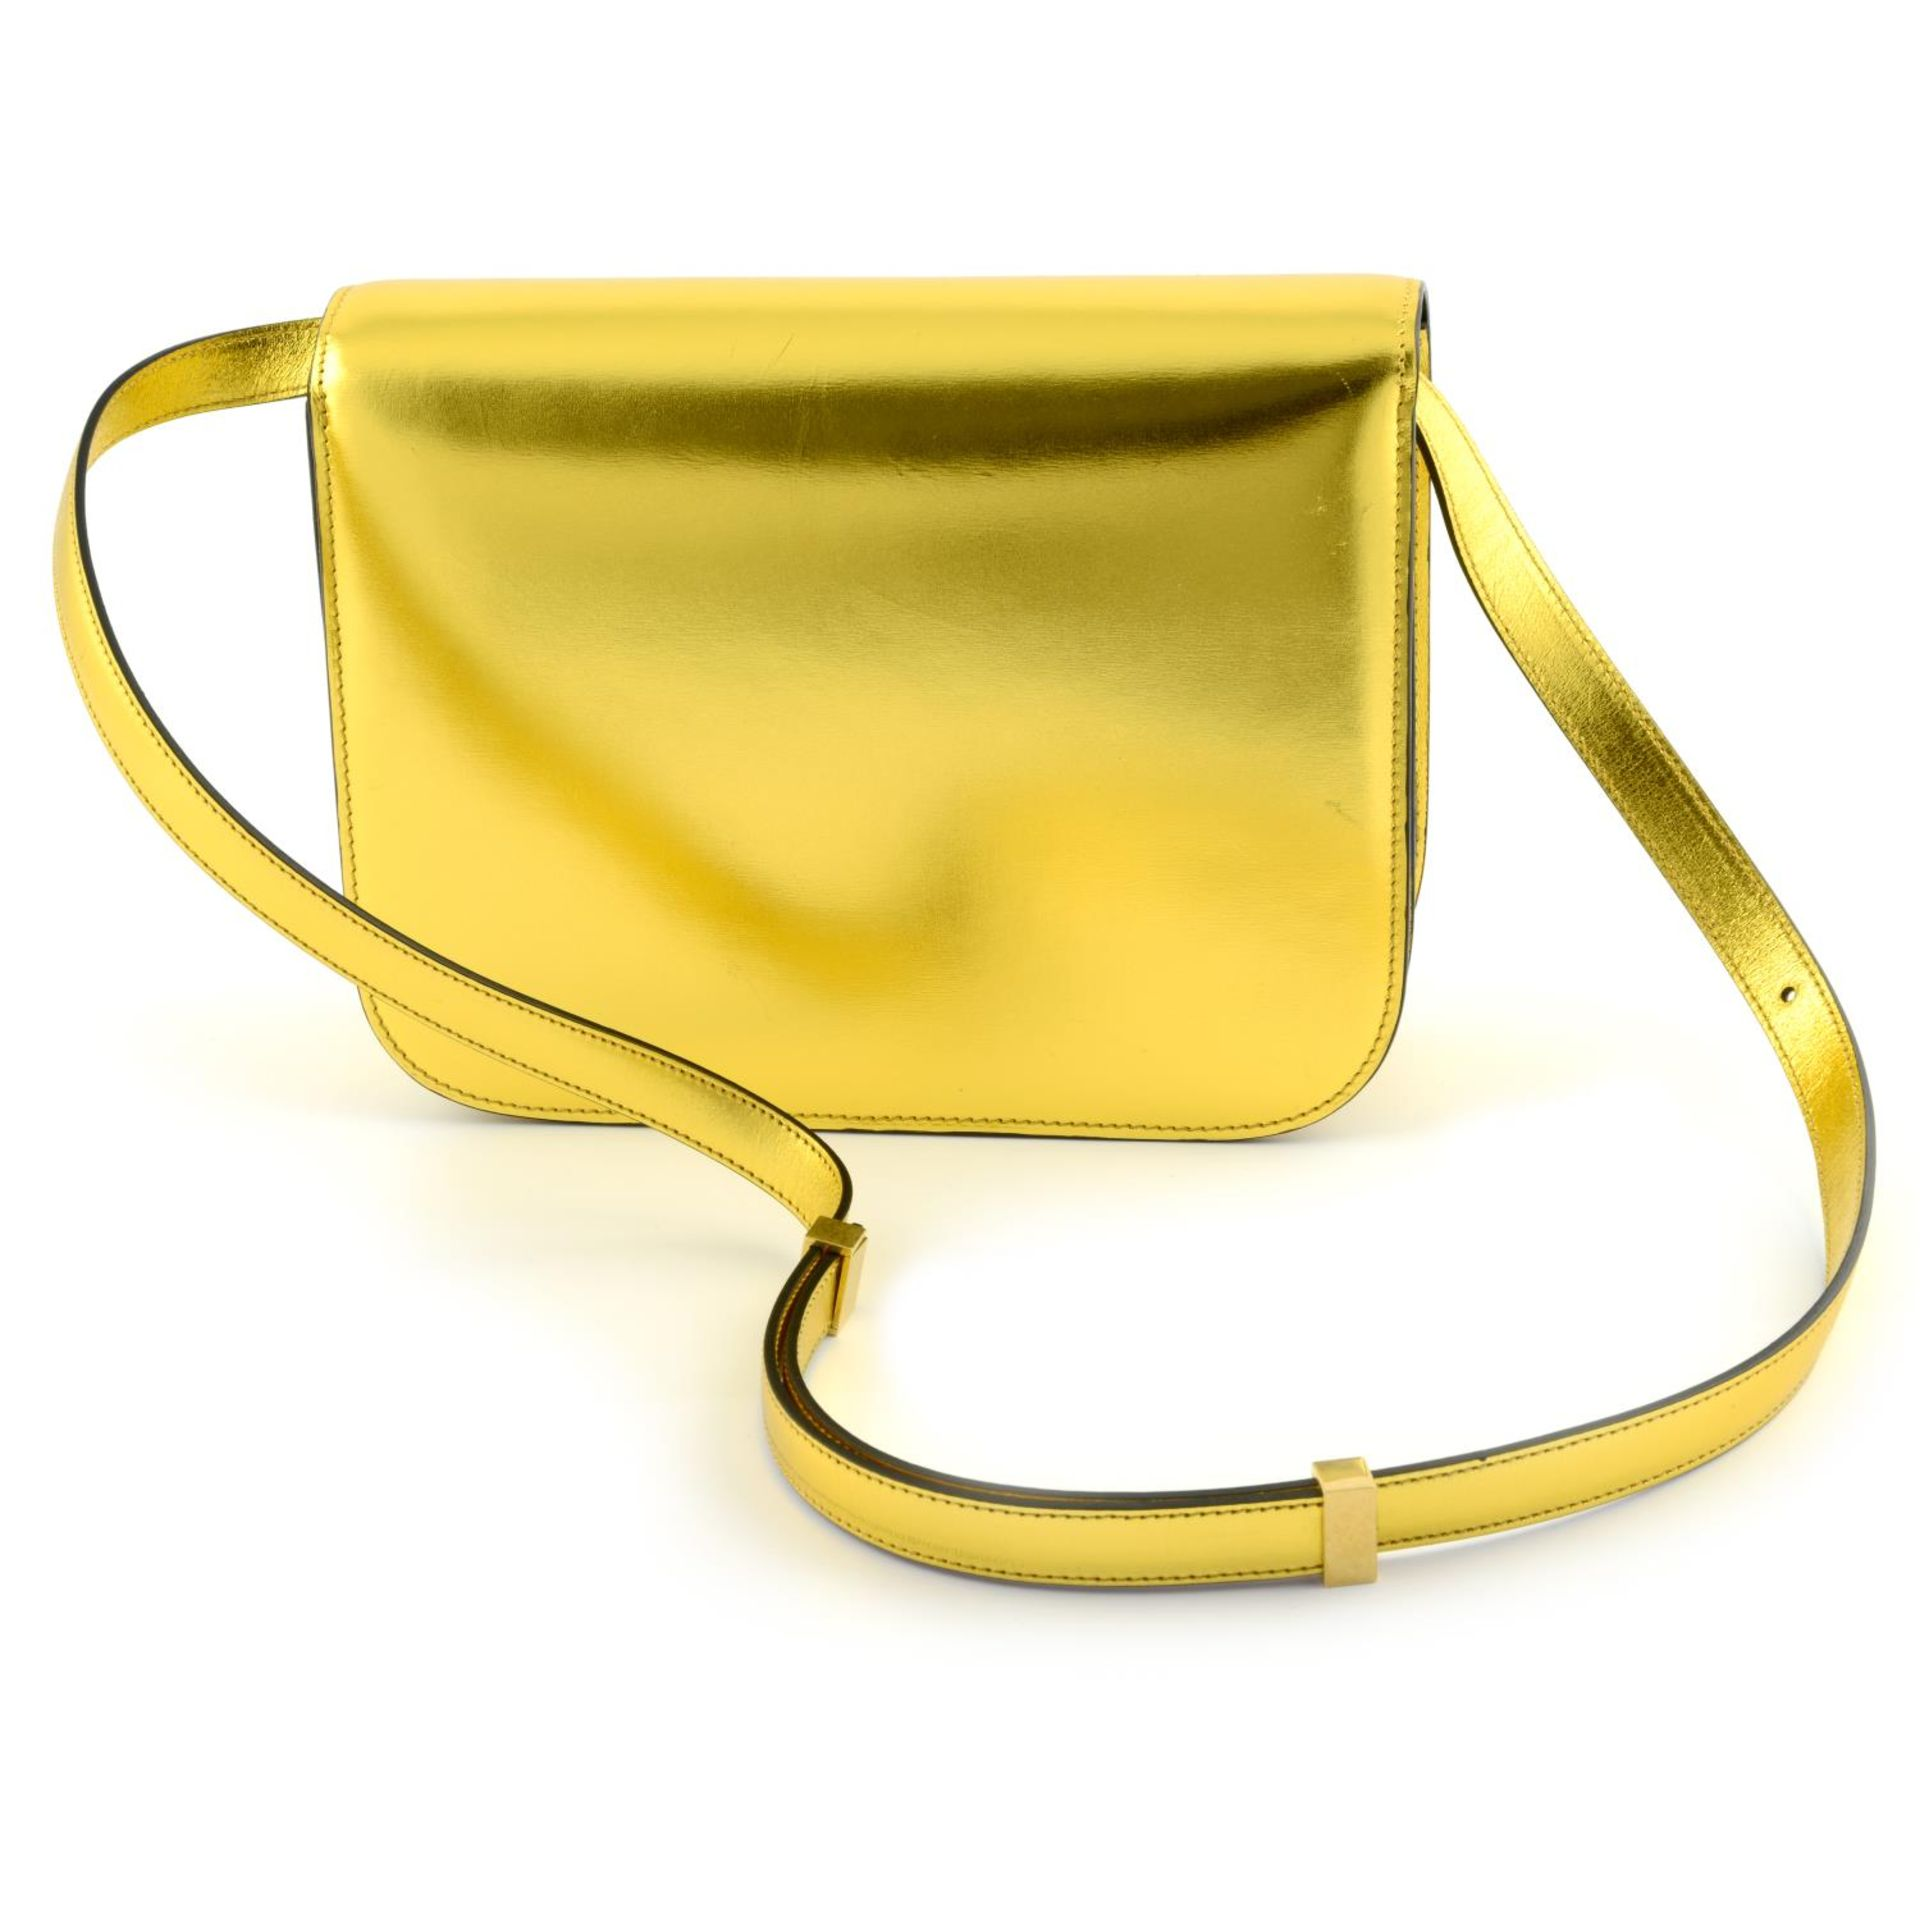 CÉLINE - a metallic gold Box handbag. - Image 2 of 9